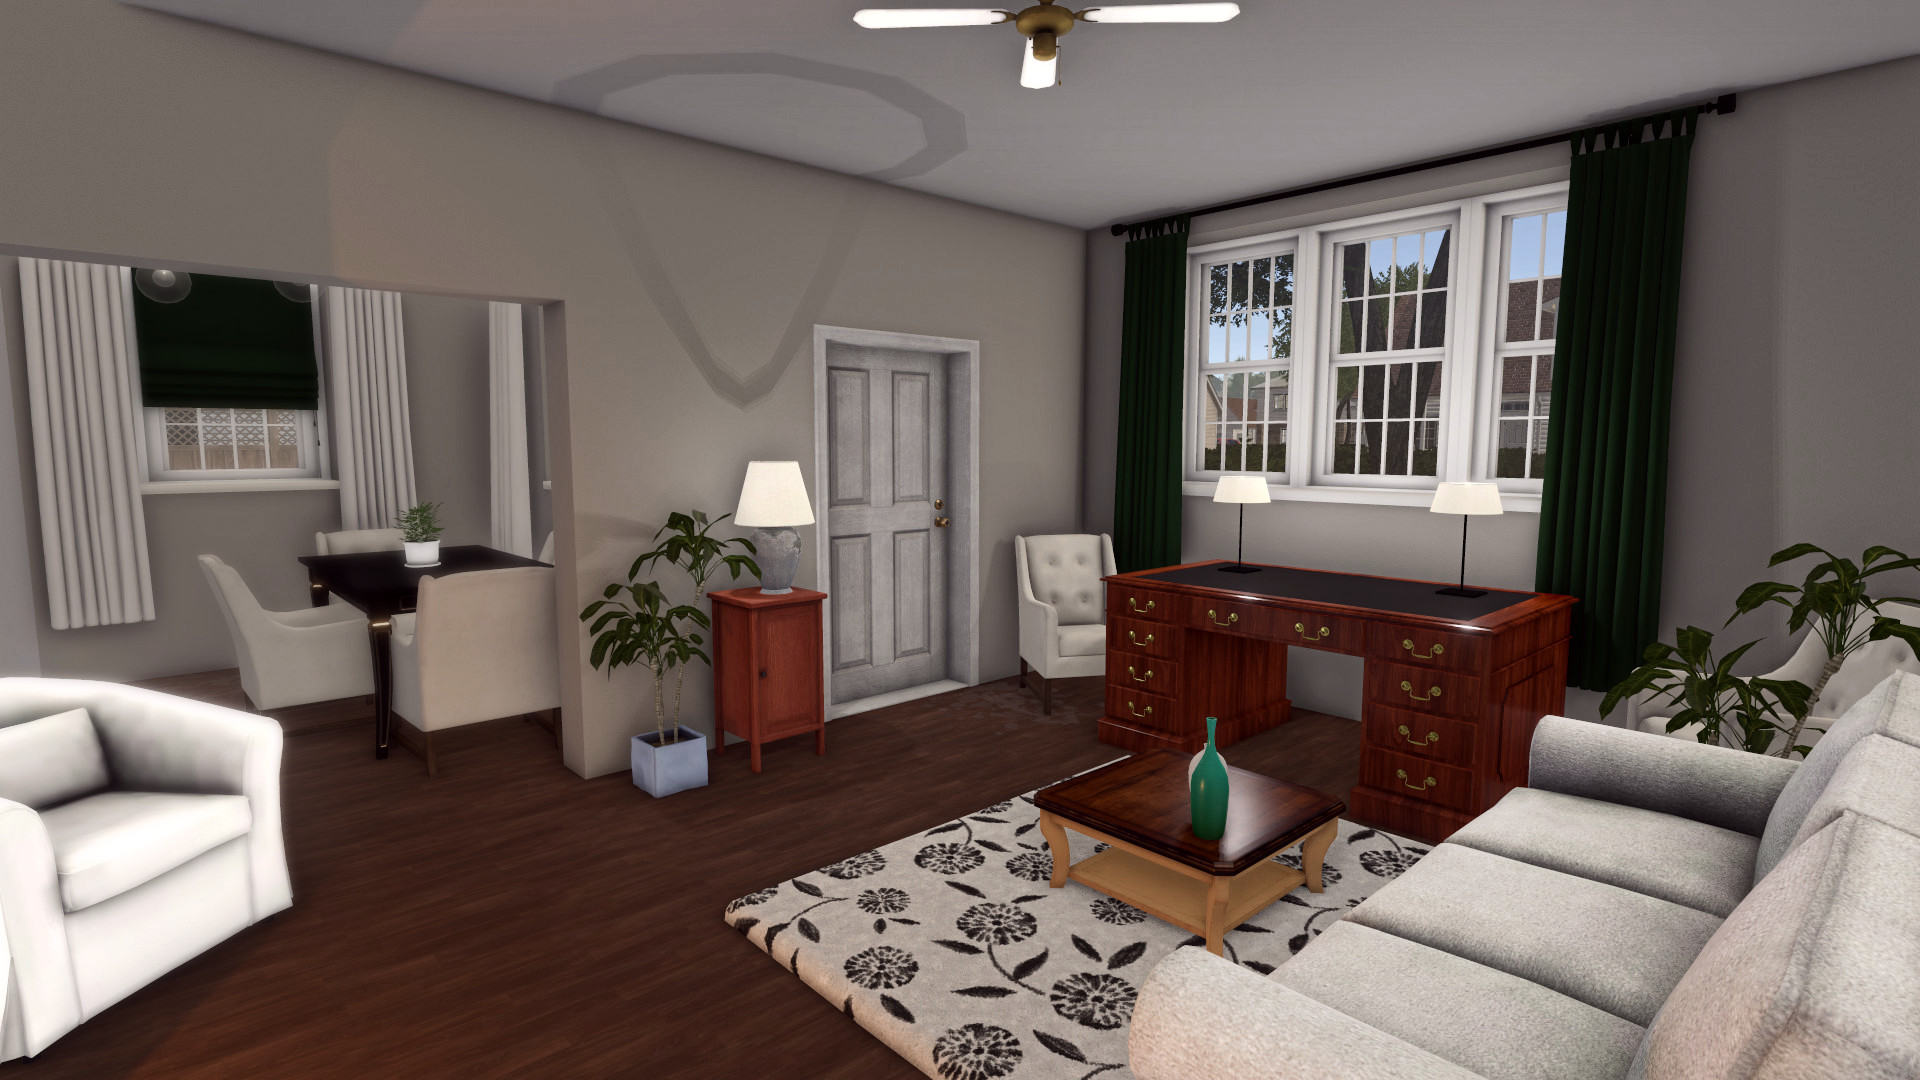 House Flipper Hgtv Dlc On Steam